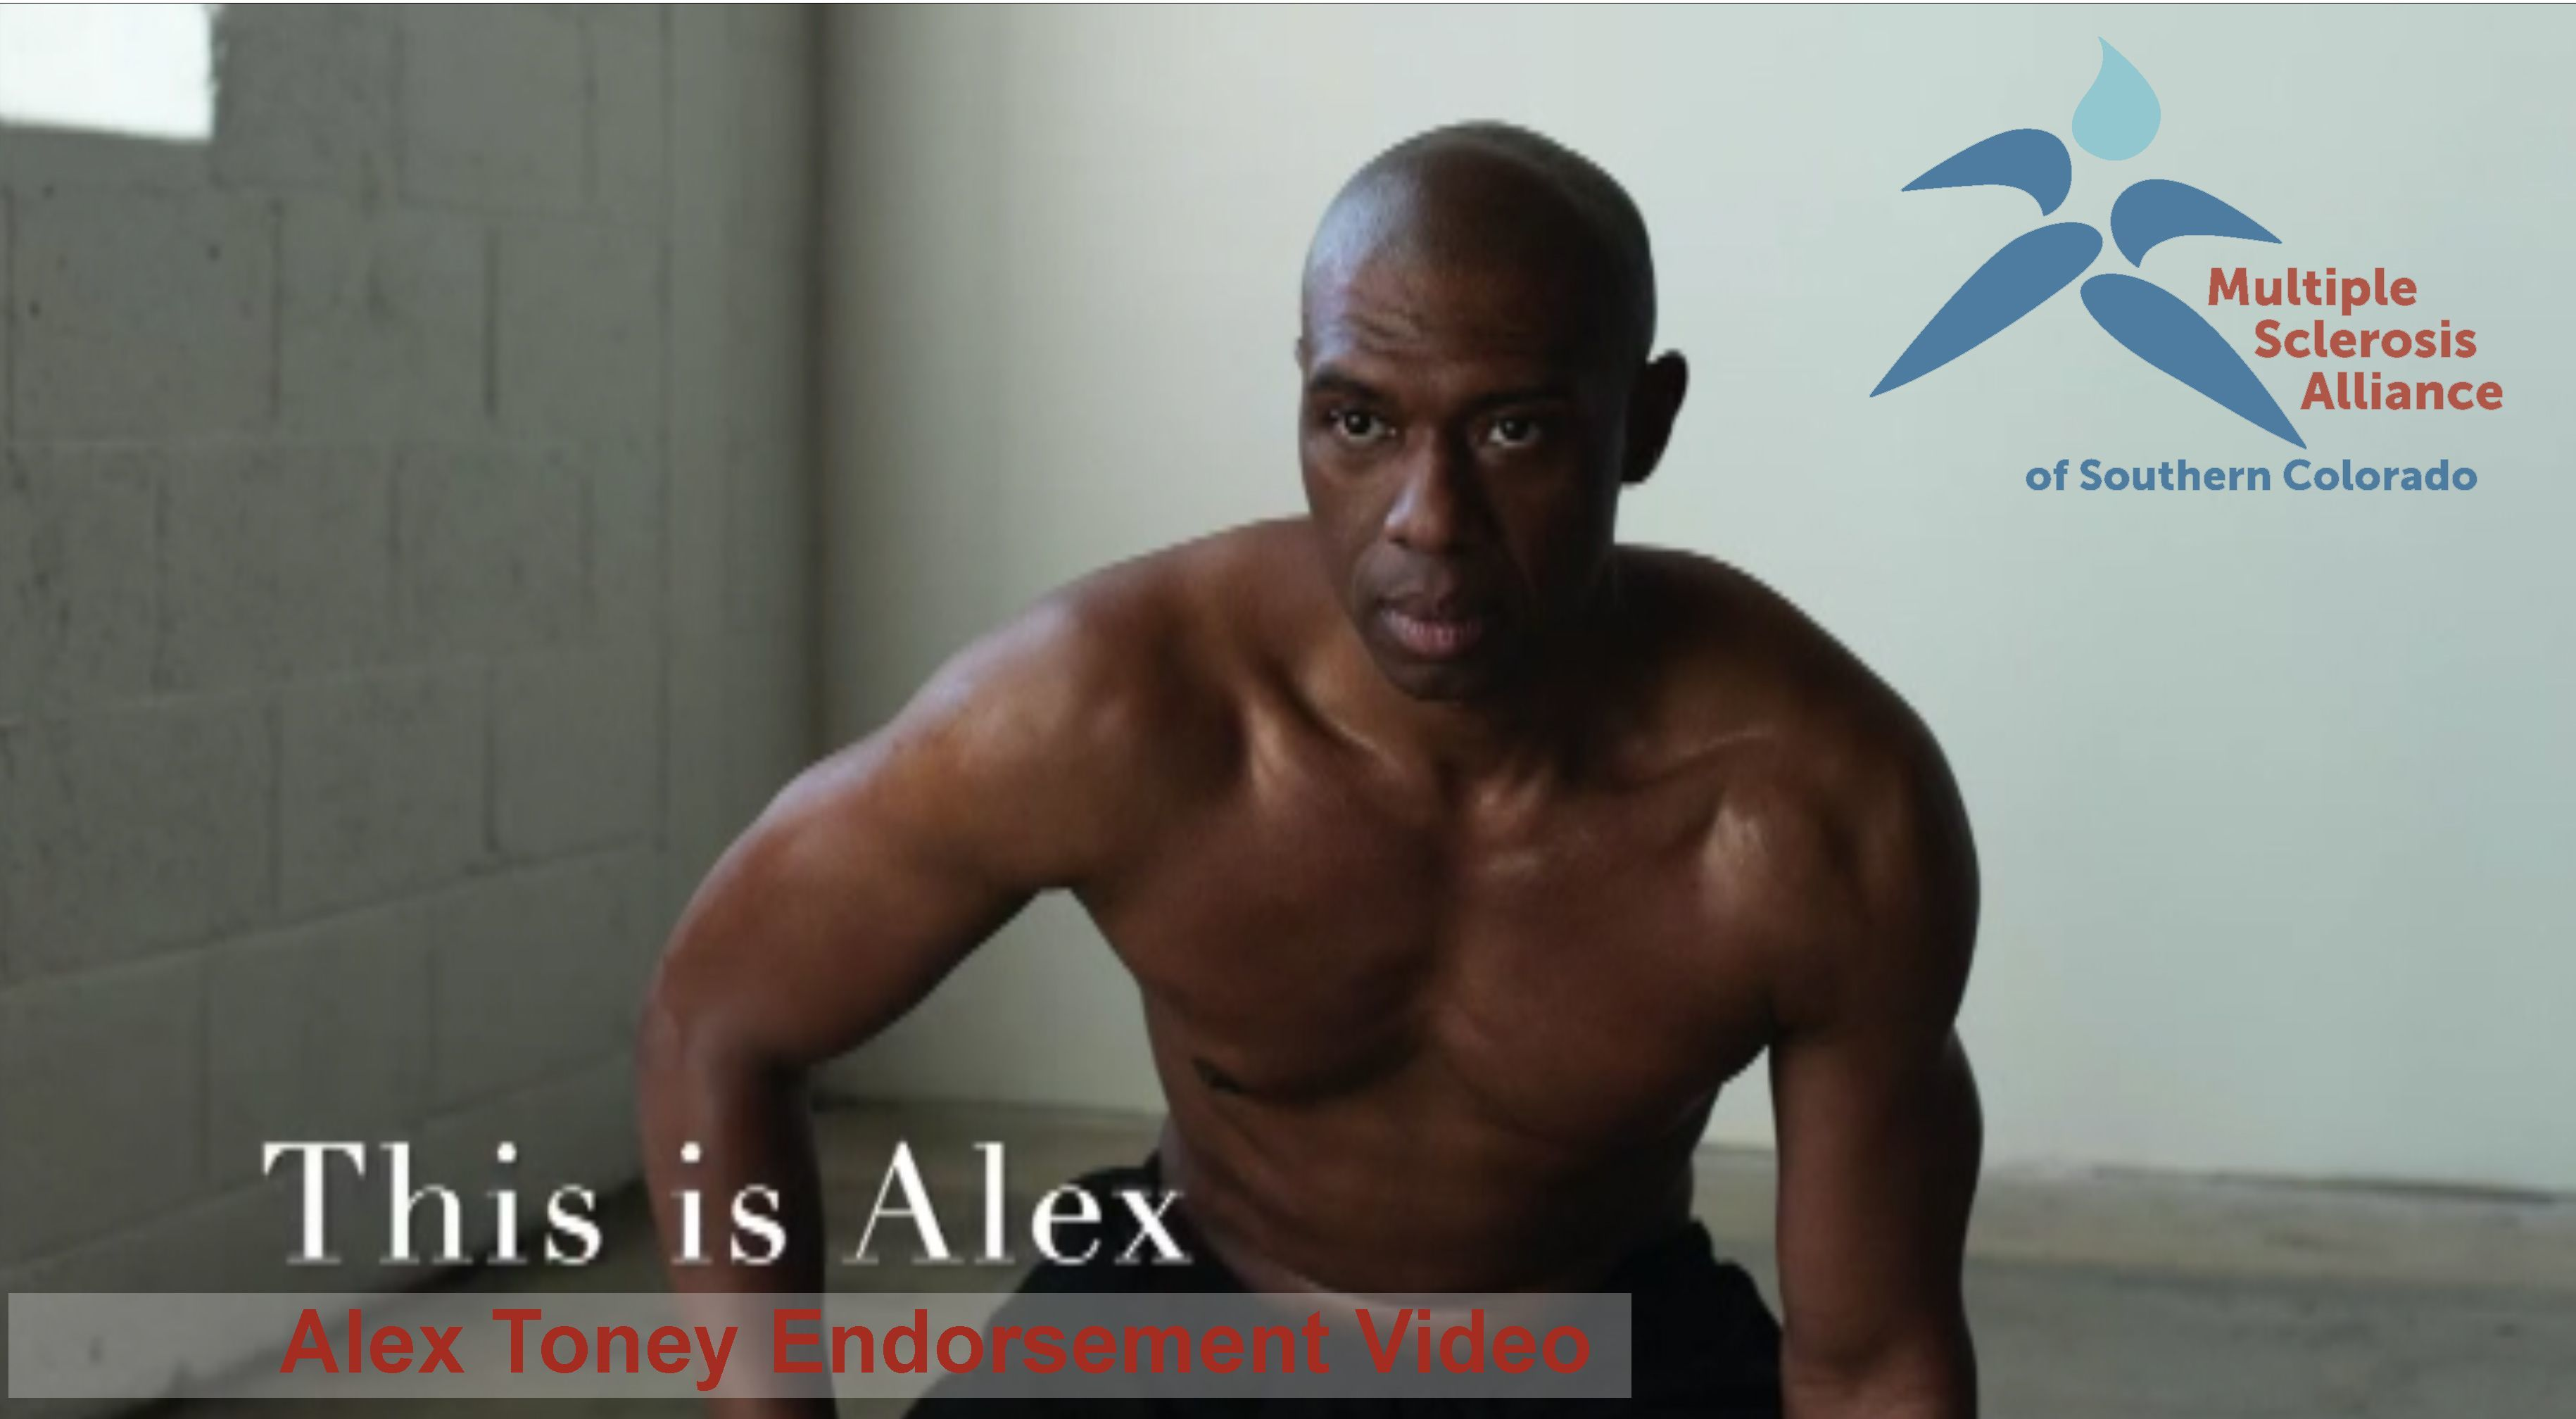 Alex Toney Endorses MSA!